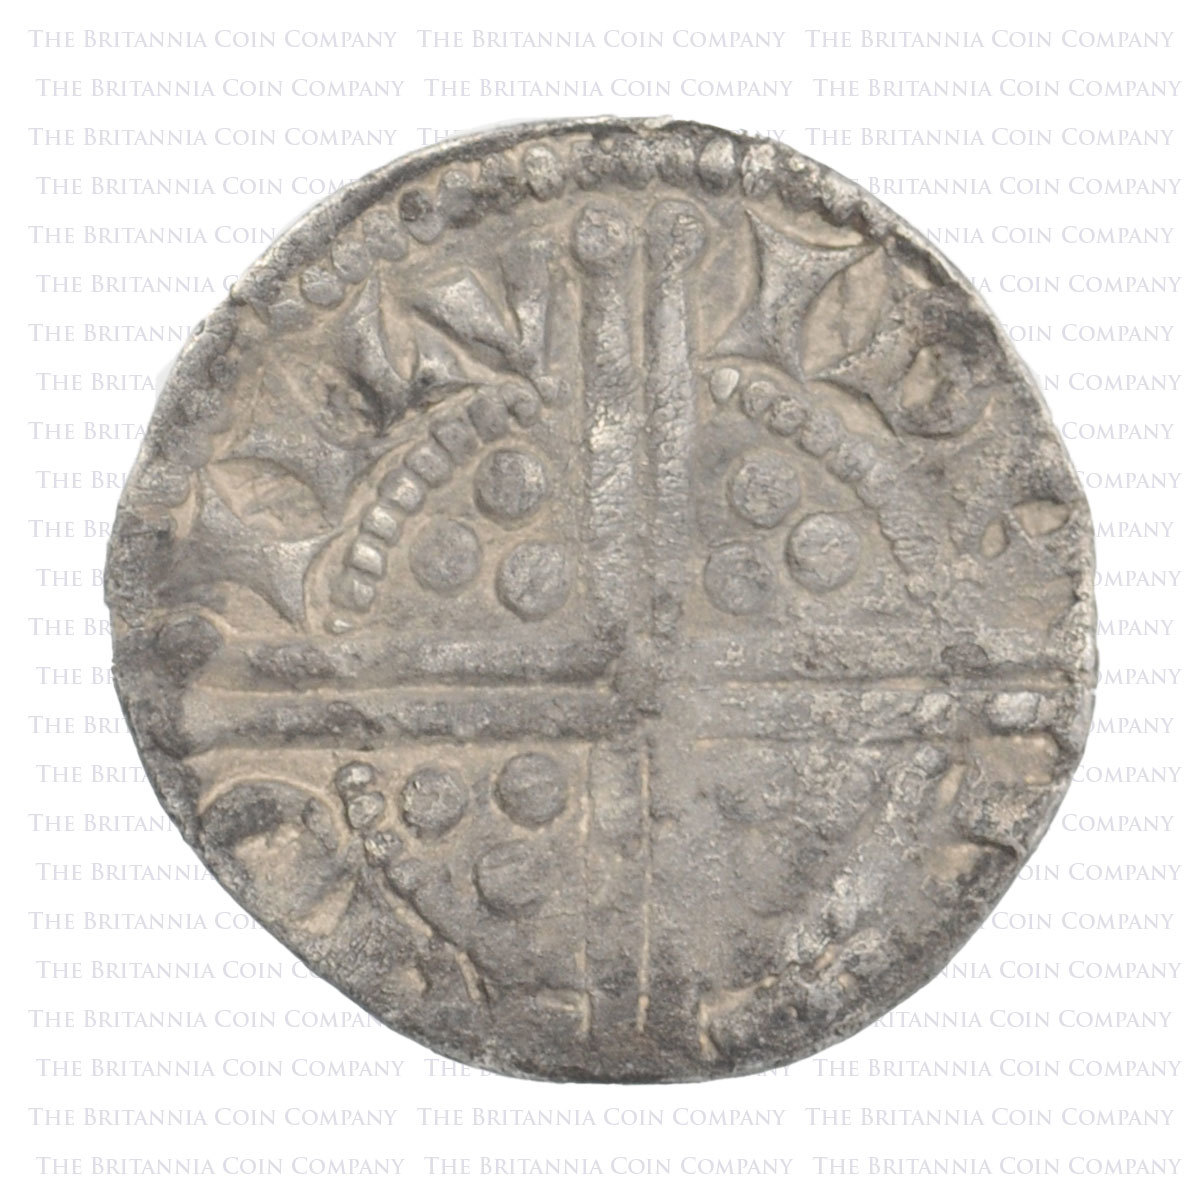 1247-79 Henry III Hammered Silver Penny. Henri on London